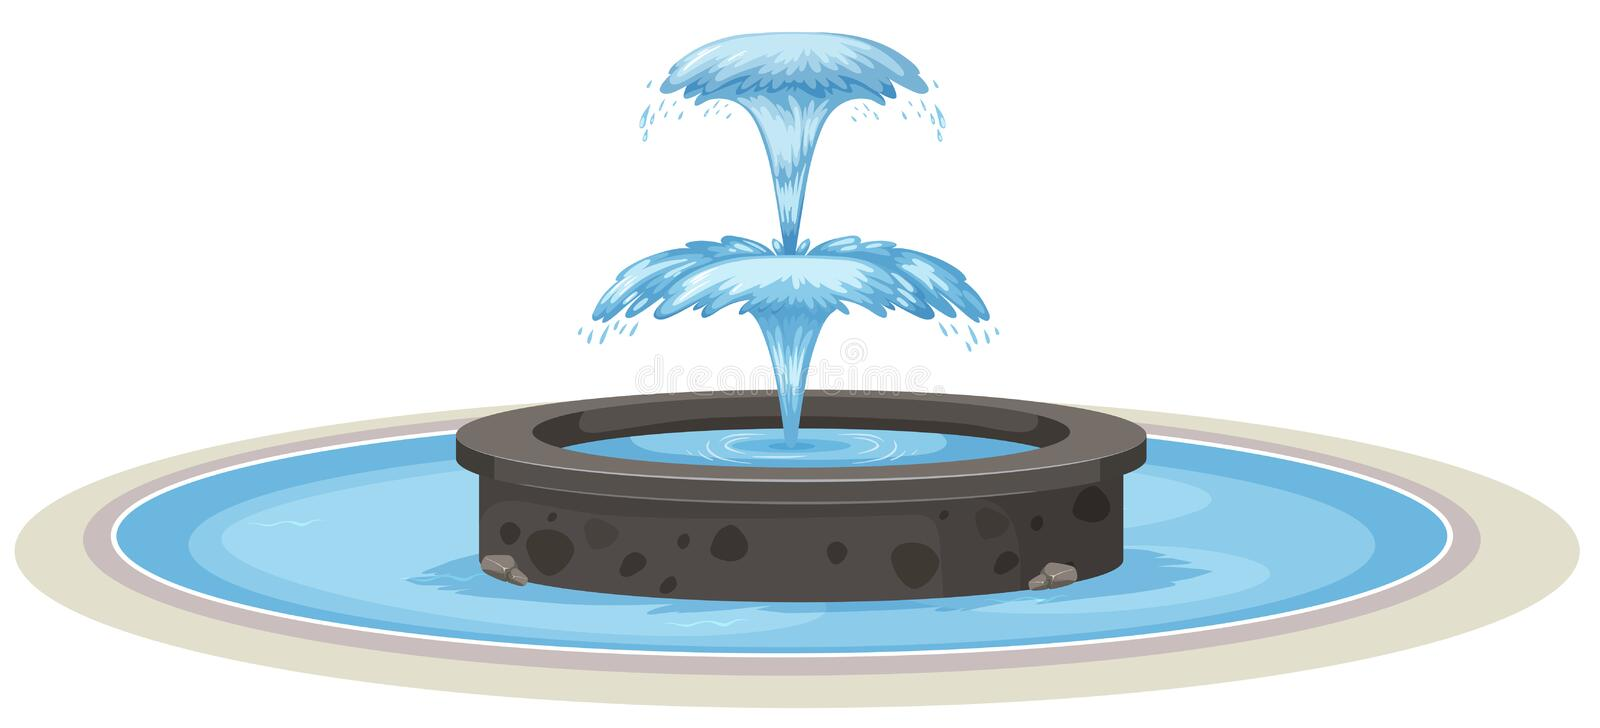 Fontaine d'isolement sur le fond blanc illustration stock